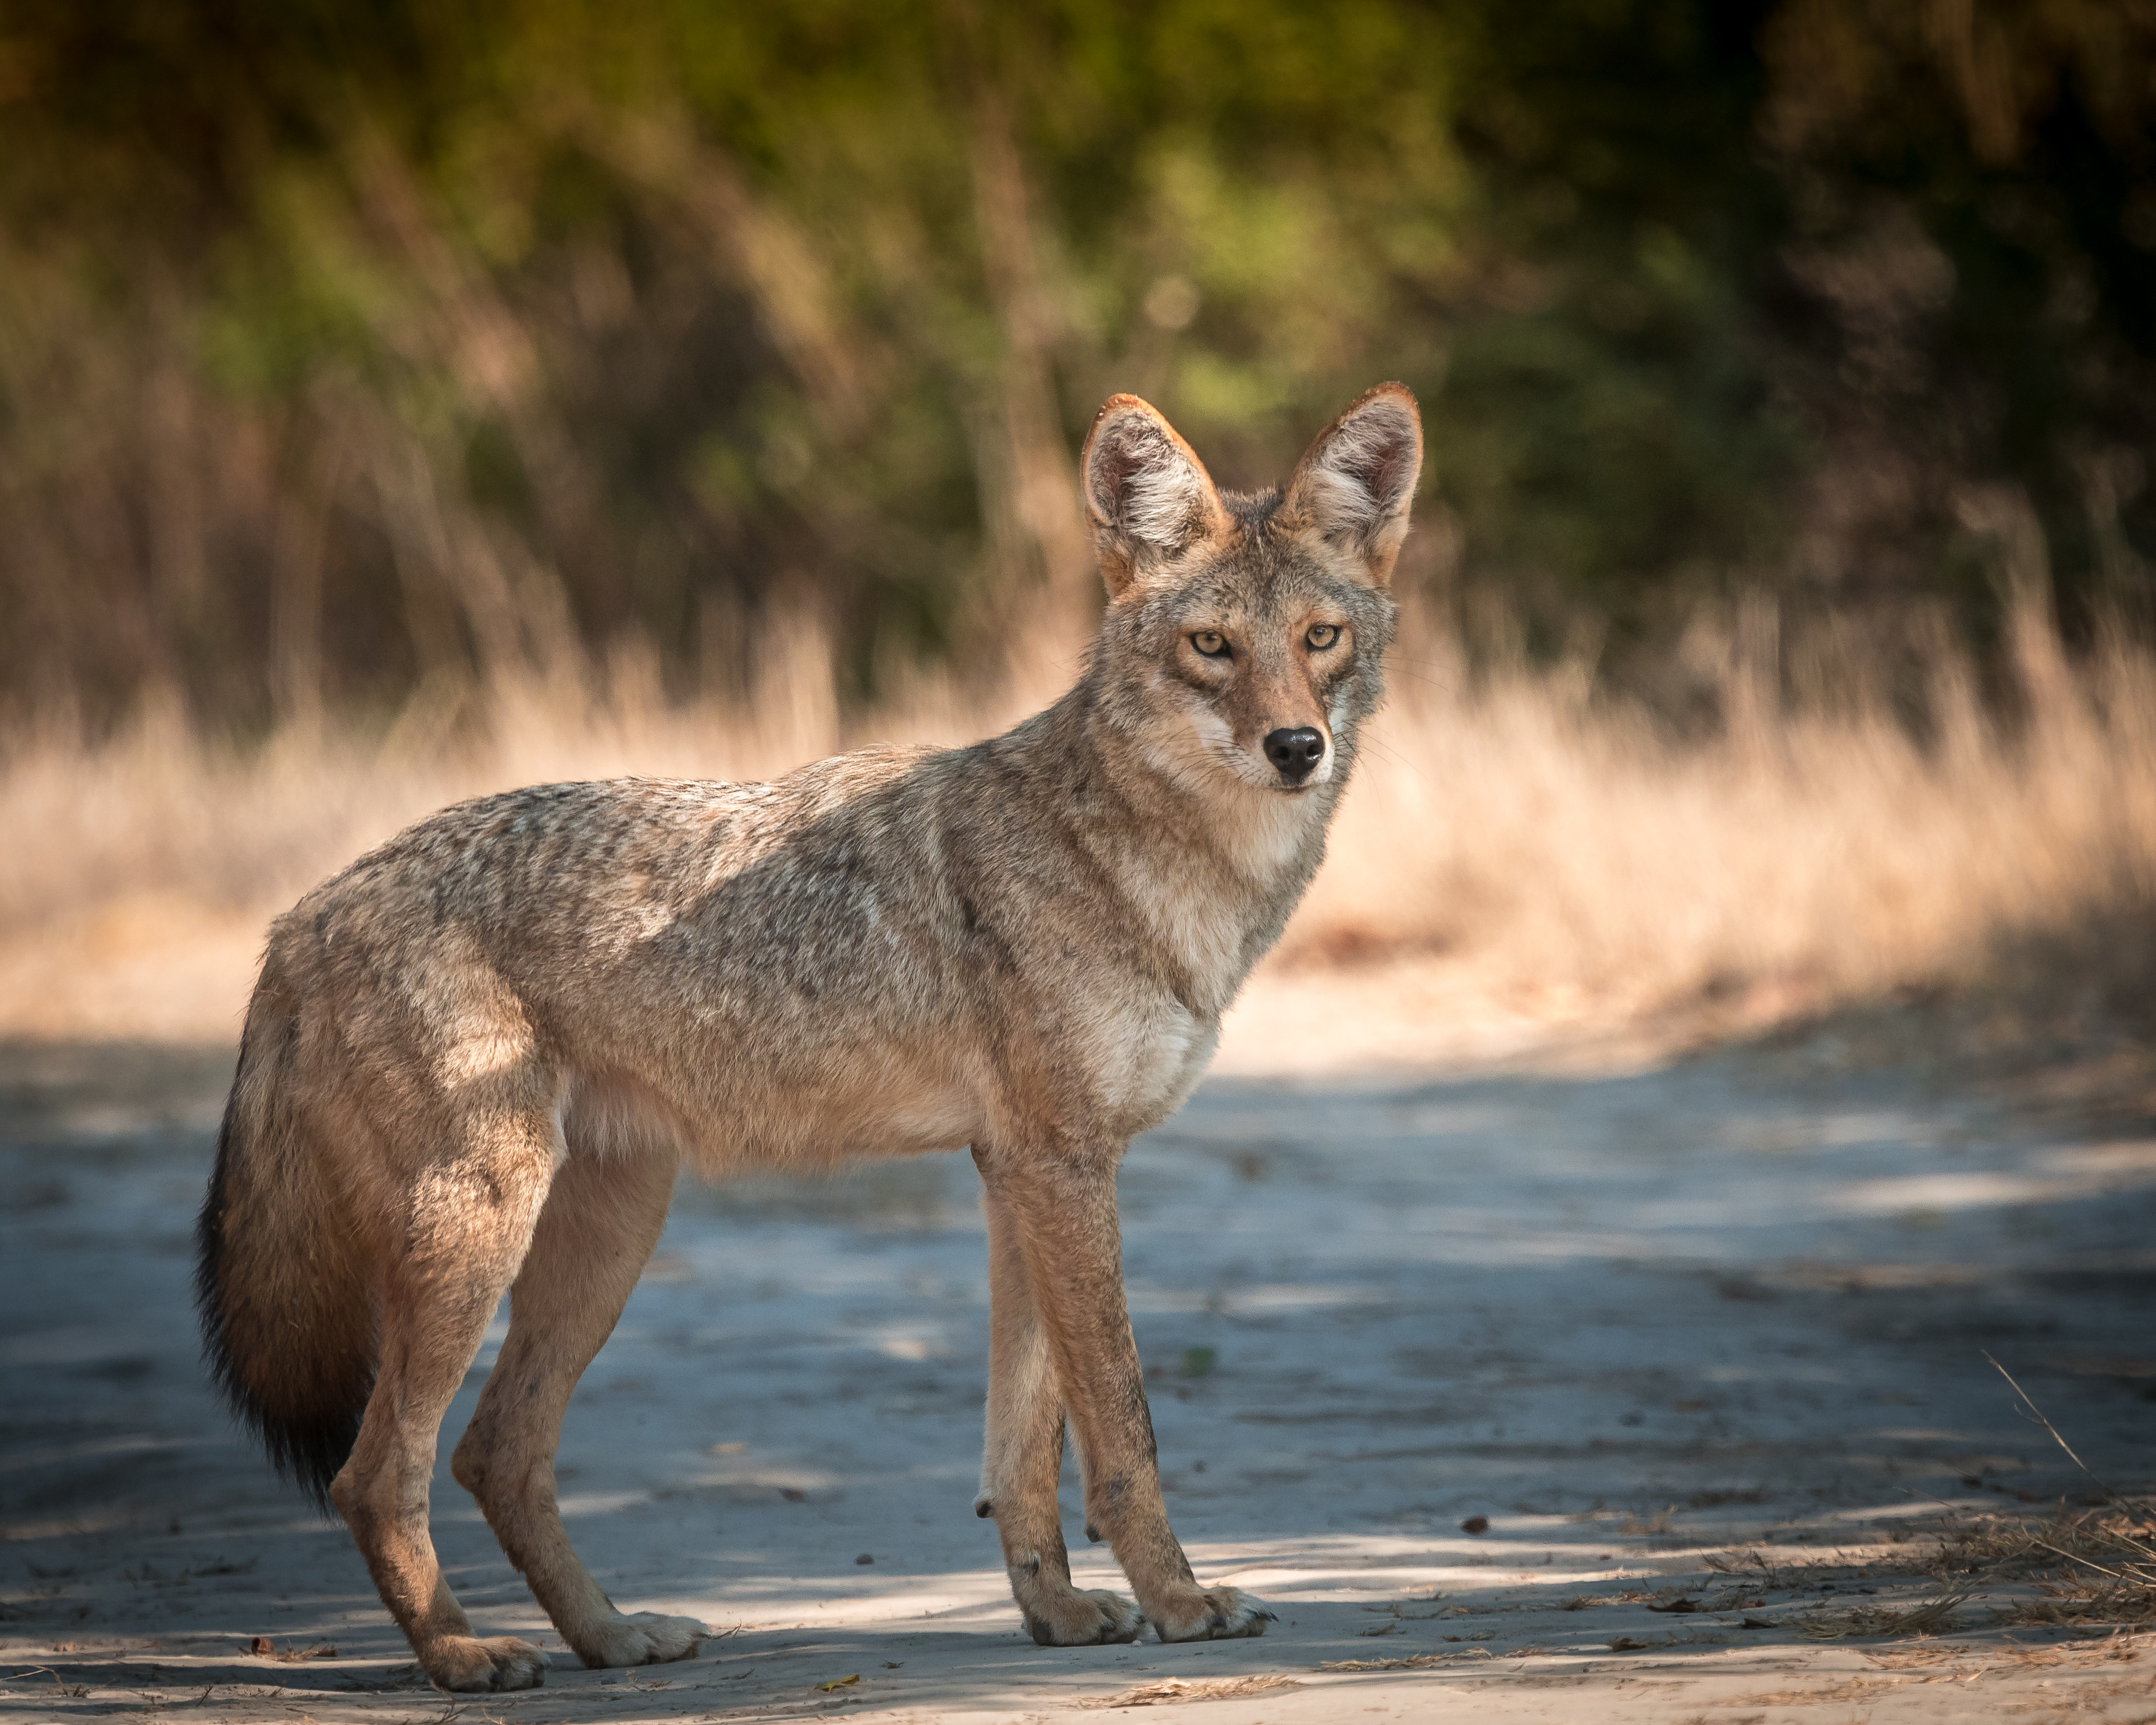 138598 download wallpaper Animals, Coyote, Muzzle, Predator, Animal, Sight, Opinion screensavers and pictures for free